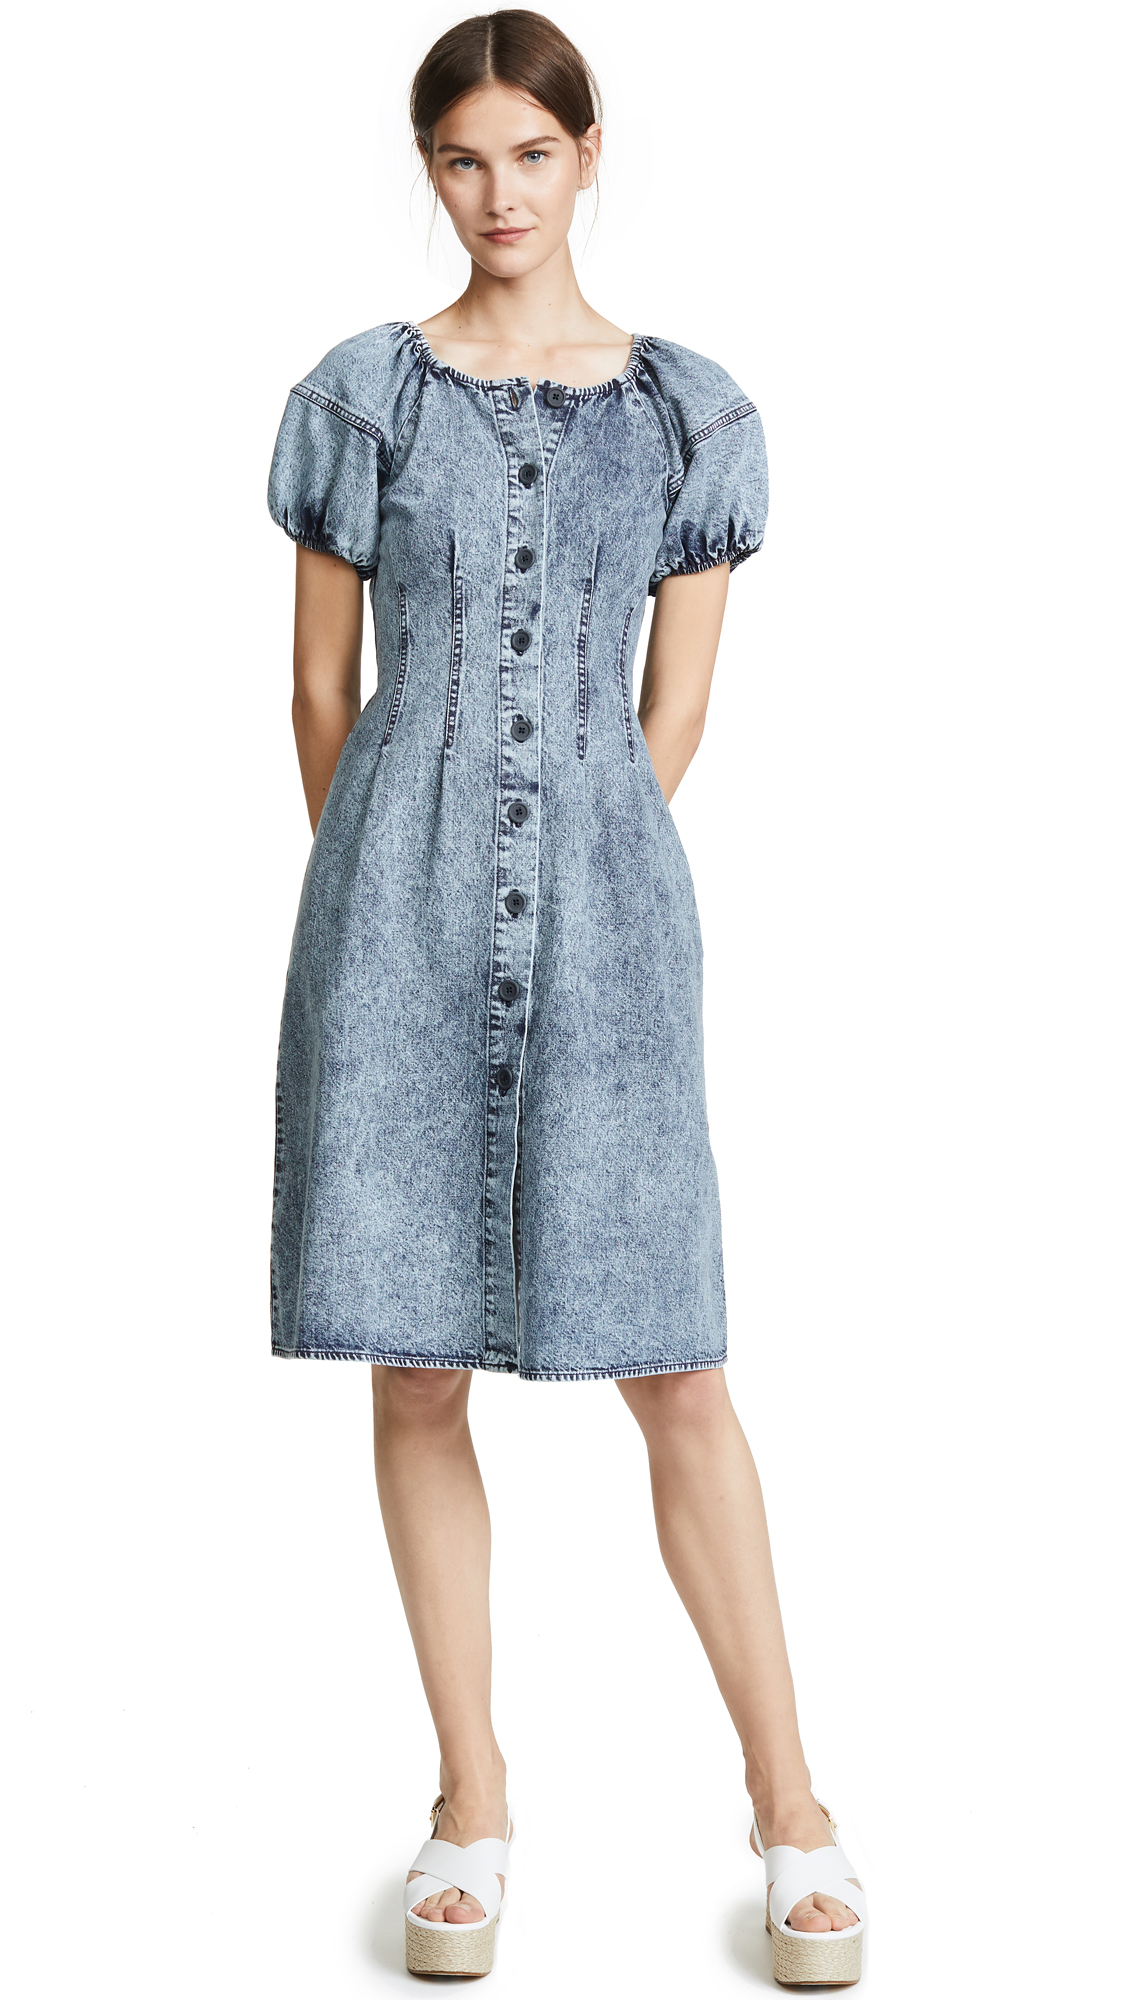 Sea Jocelyn Acid Wash Dress In Indigo